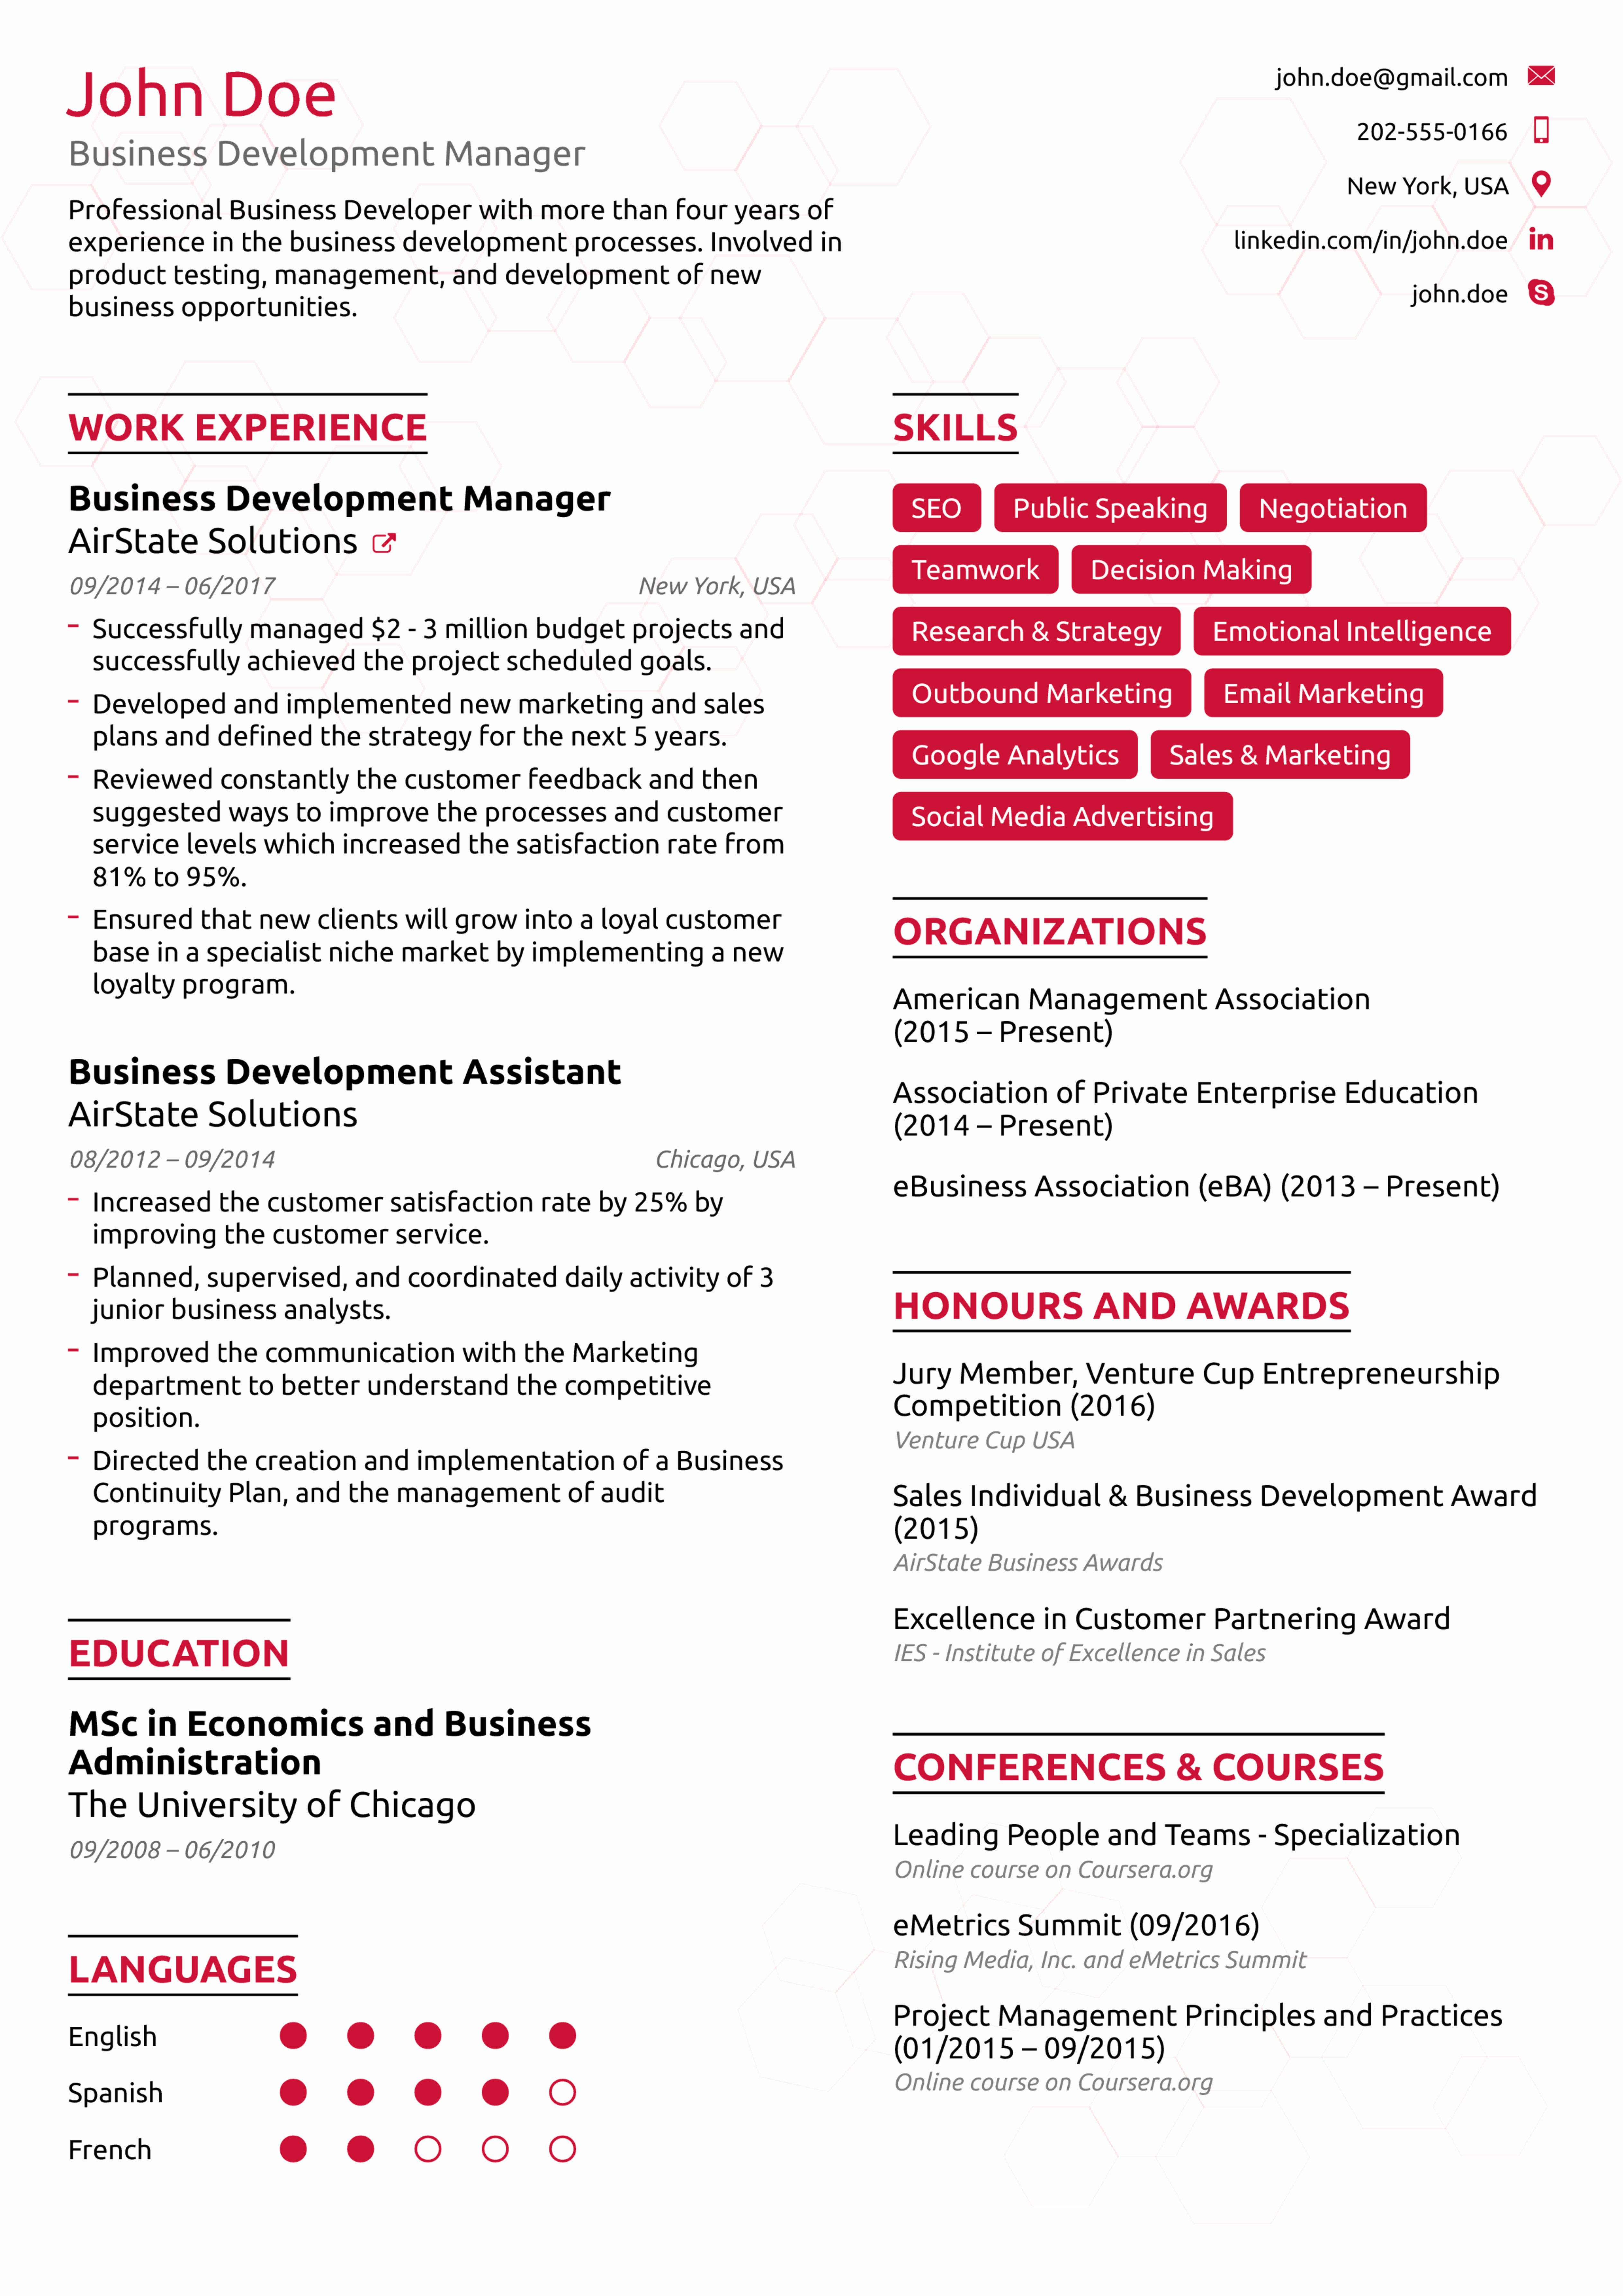 Best Resume format Inspirational Resume Examples for Your 2019 Job Application